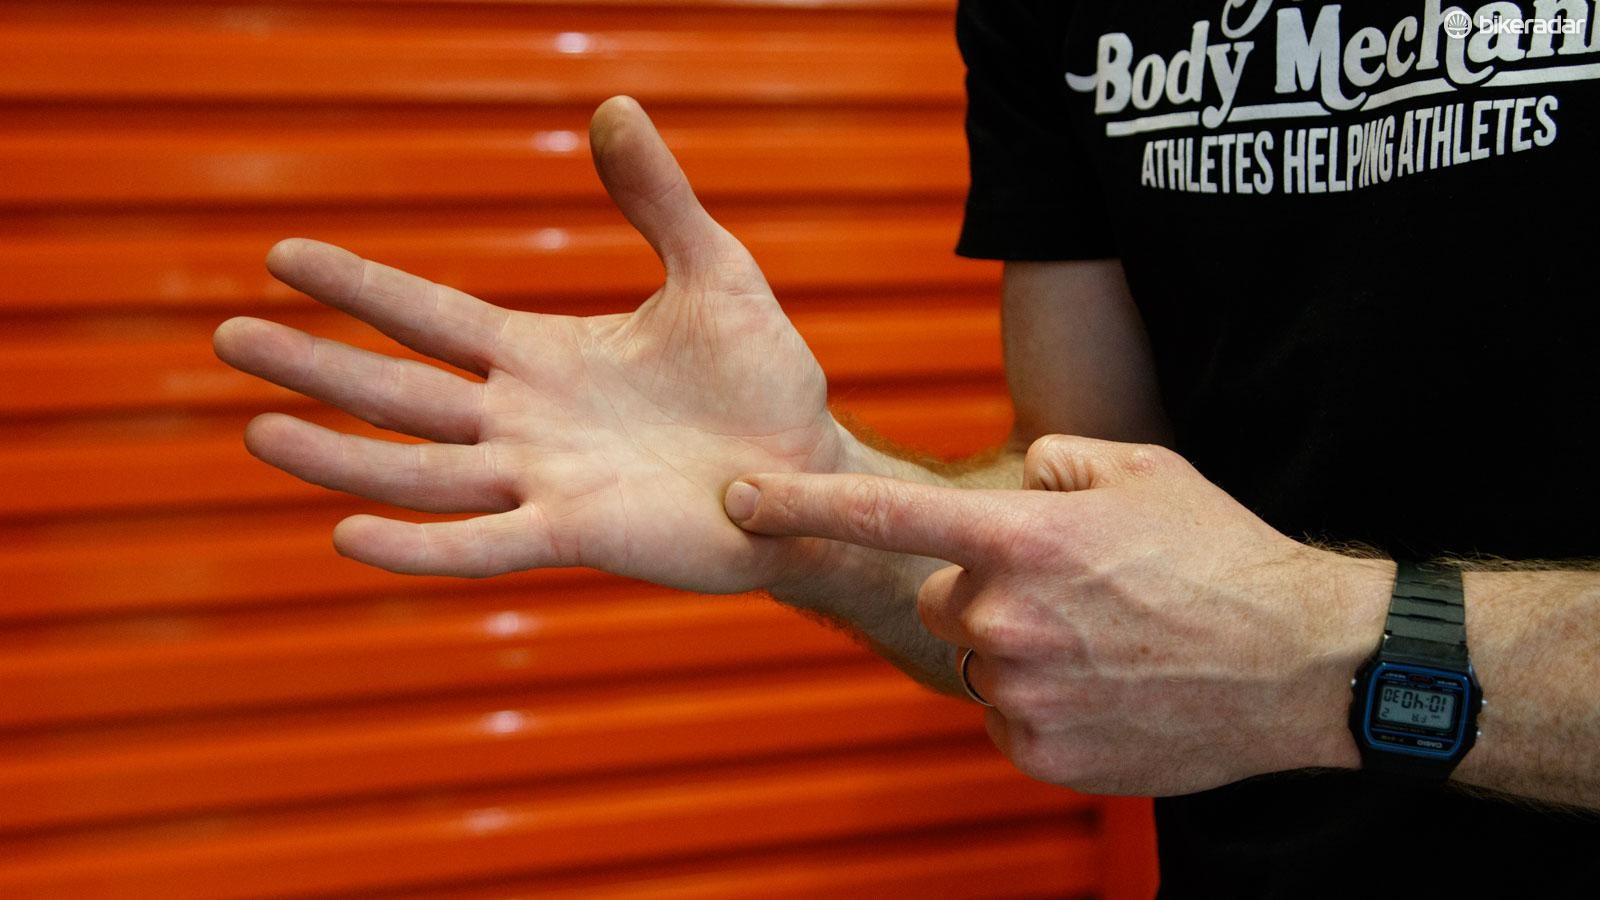 Most current bar designs place plenty of stress on the sensitive nerves in your palms, wrists and all the way through to your neck and shoulders